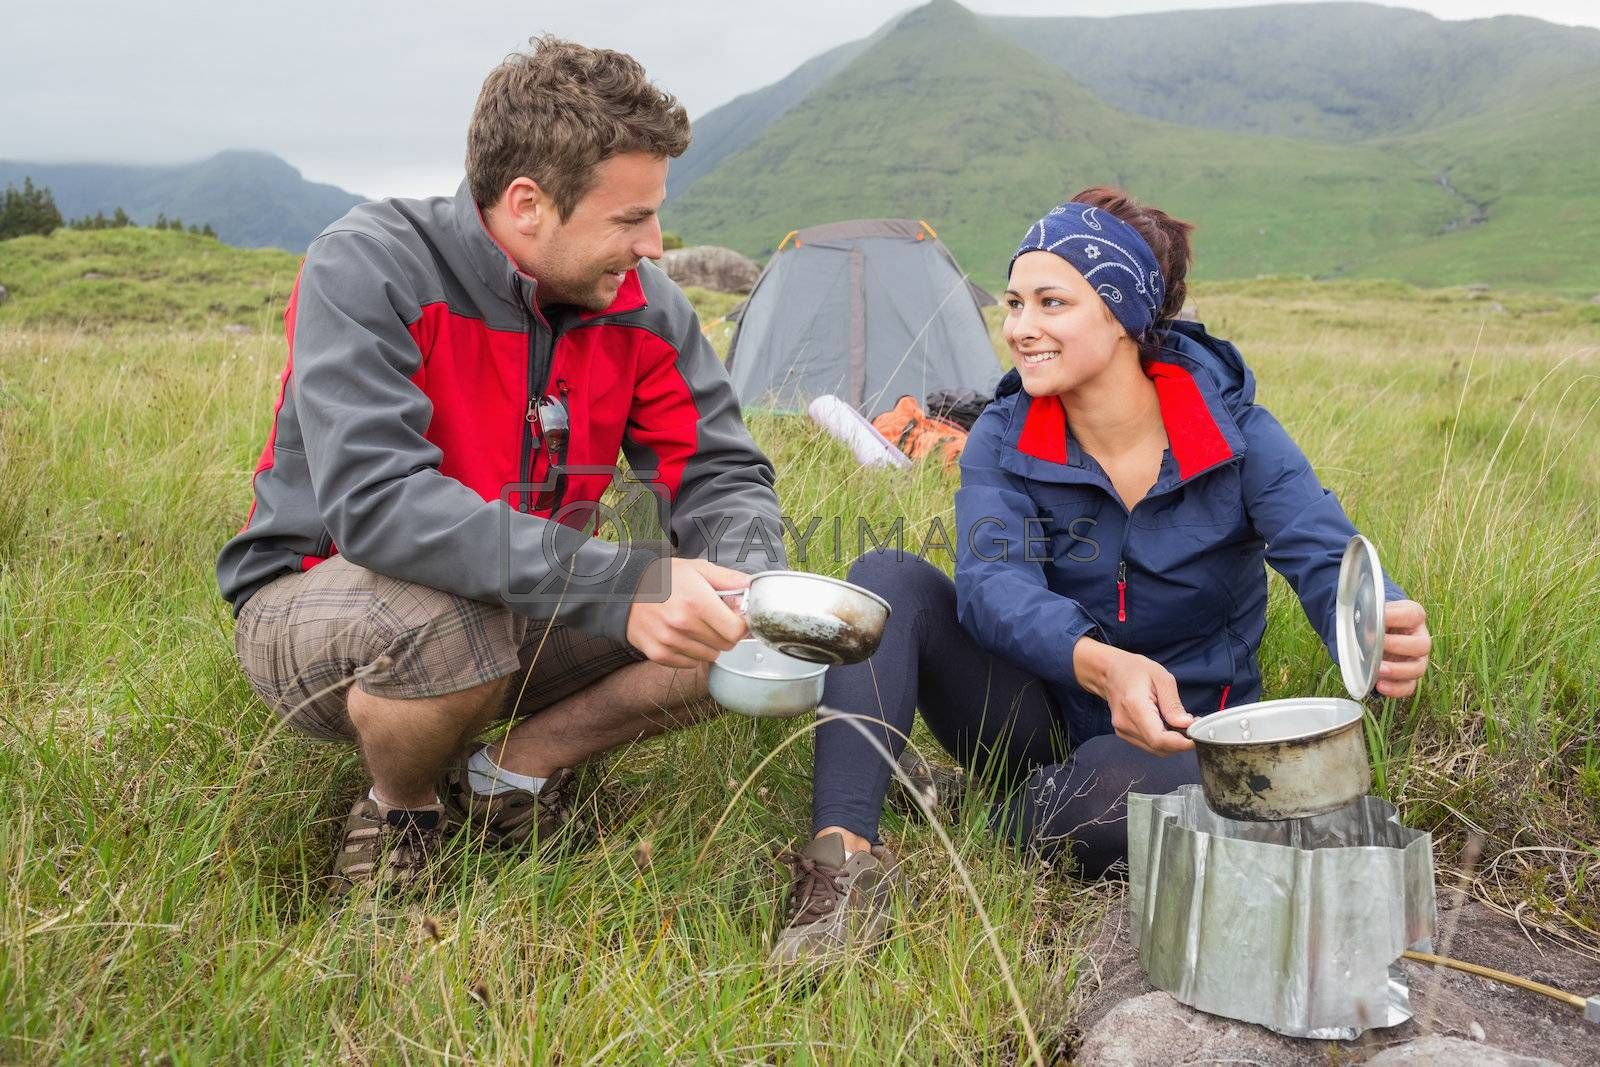 Couple cooking outside on camping trip and smiling by Wavebreakmedia